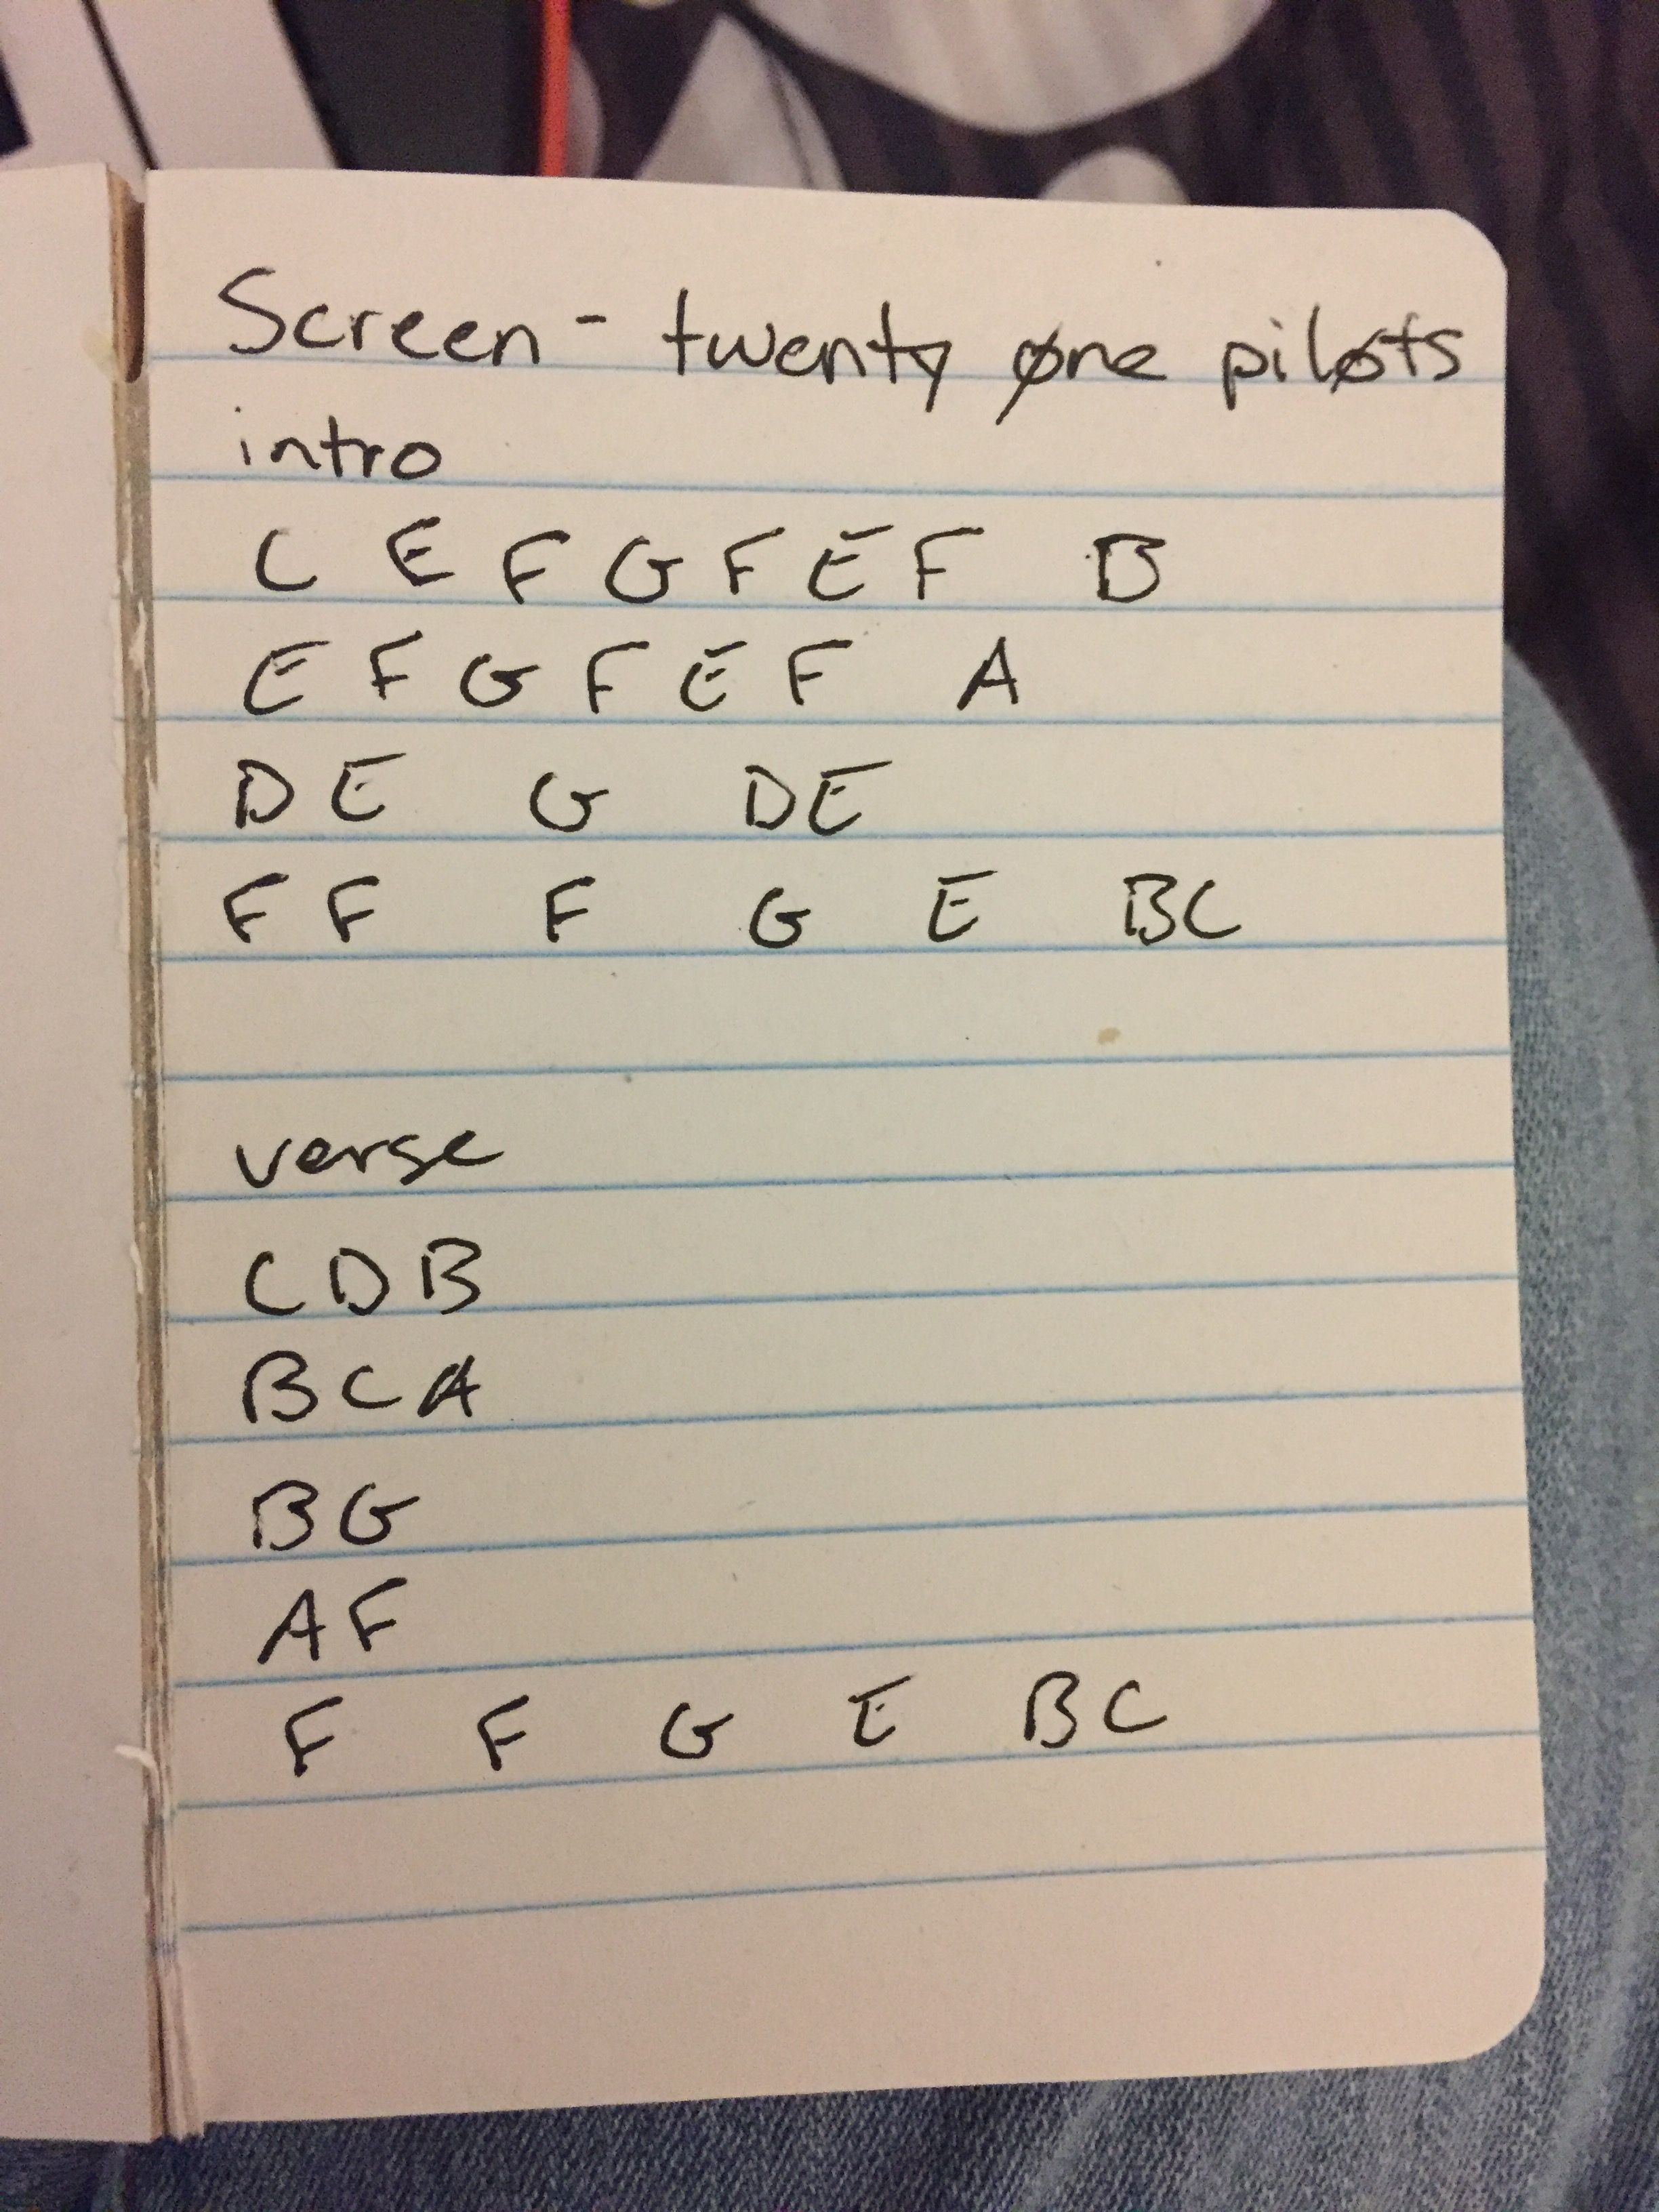 Twenty one pilots - Screen piano keys - because I can't read